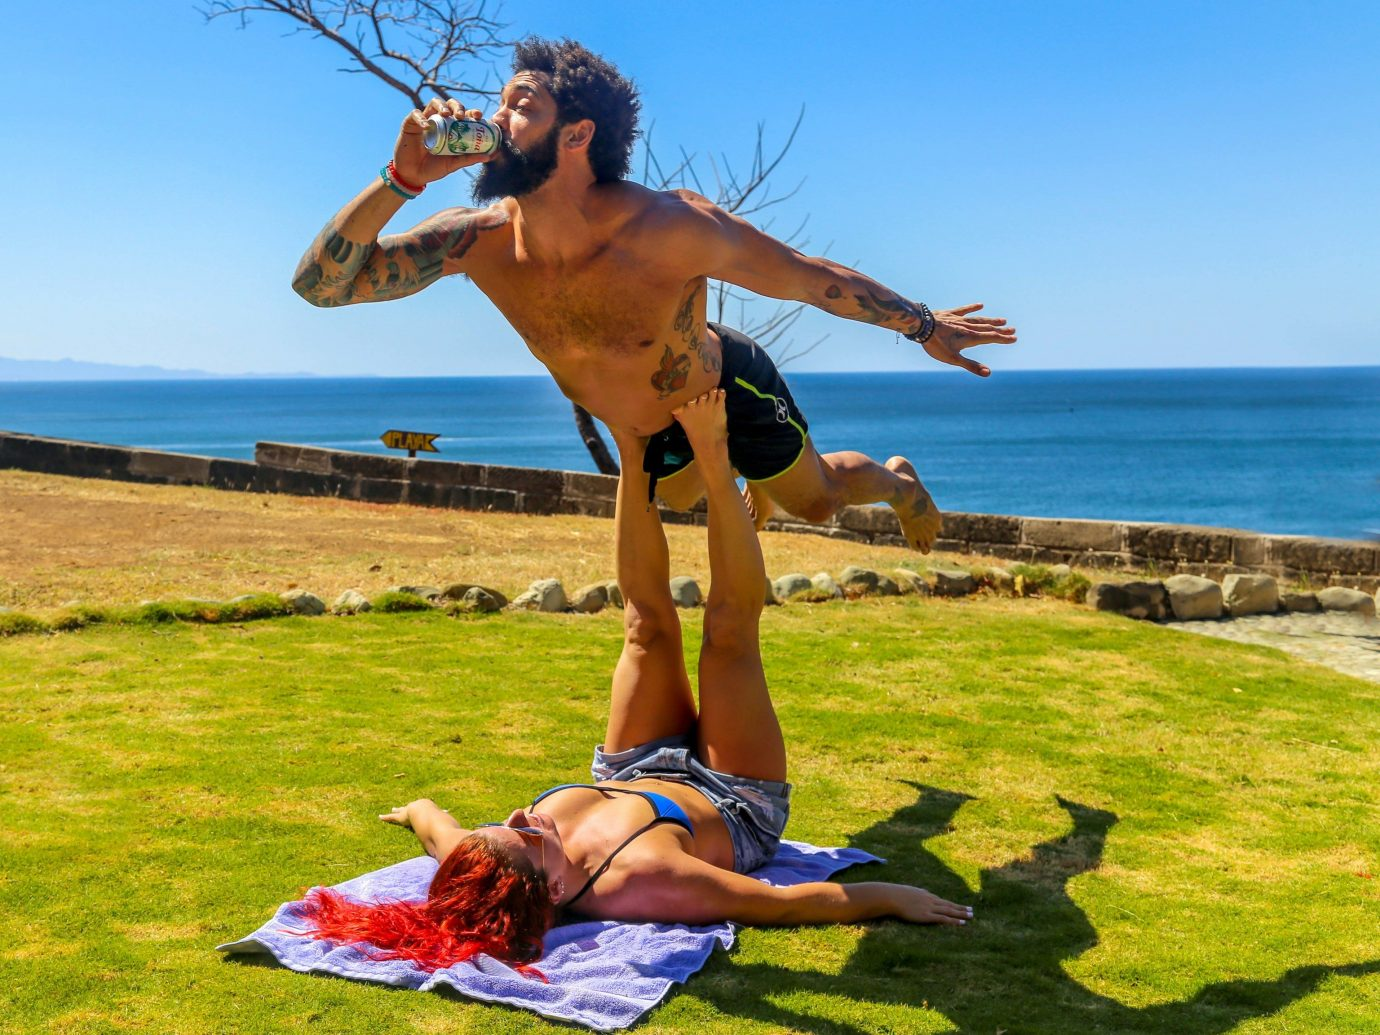 Health + Wellness Meditation Retreats Trip Ideas Yoga Retreats sky outdoor grass water human action person sports physical fitness muscle vacation Sea sun tanning day